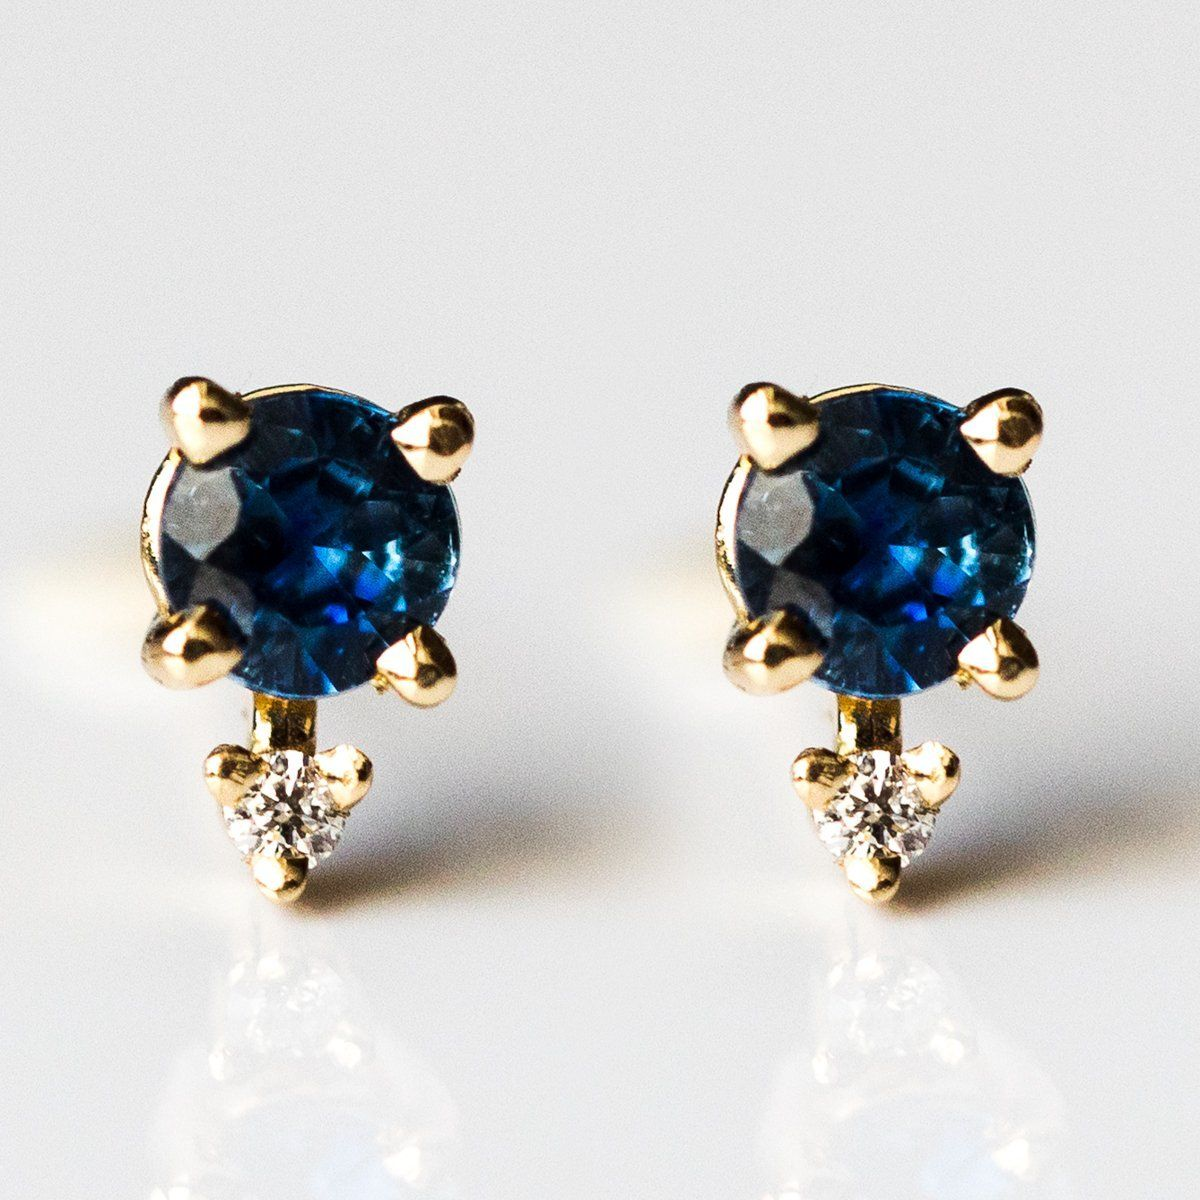 7830f2cf2 local eclectic | Tiny Two Stone Blue Sapphire & Diamond Stud Earrings  Diamond Studs,